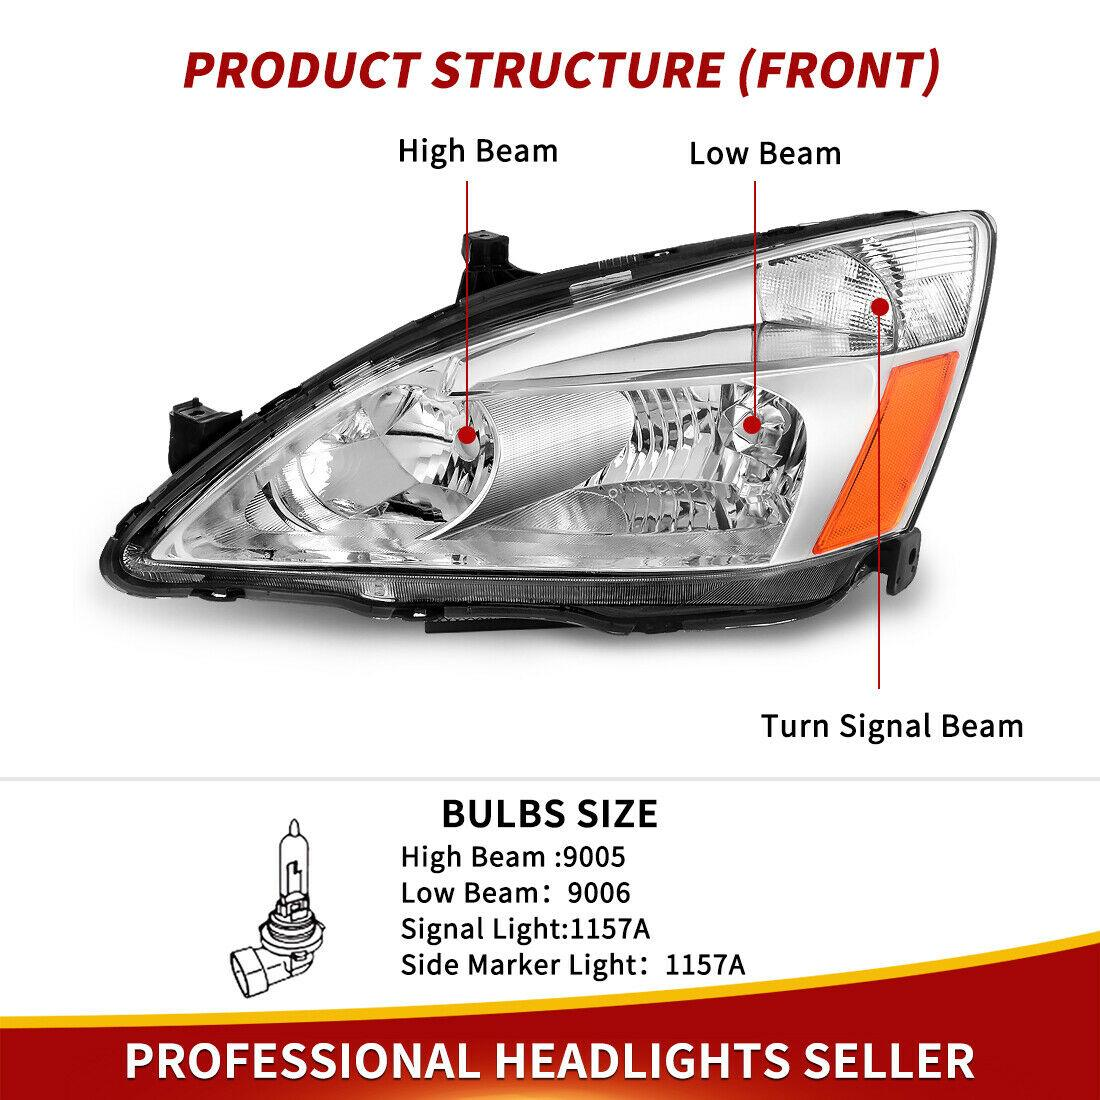 YITAMOTOR Compatible with 03 04 05 06 07 Honda Accord Headlight Assembly OE Headlamp Replacement, Chrome Housing Clear Lens - YITAMotor